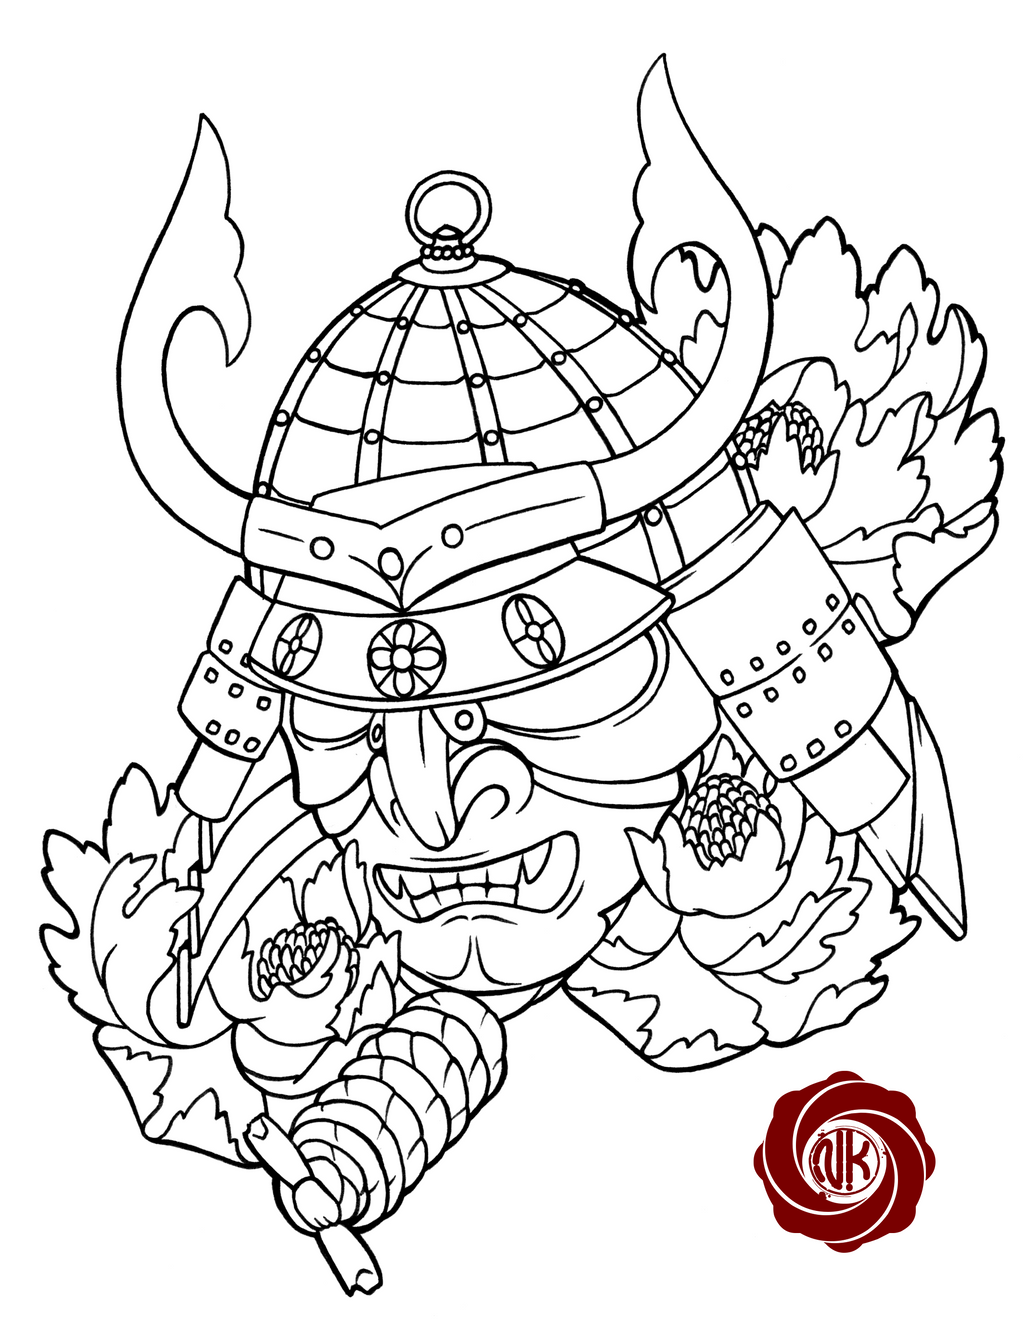 Tree Without Leaves Template together with Skull Flying Devil Skull Tattoo Design further Jester 25713181 in addition Go Go Evil Robot also 8. on scary cartoon snake